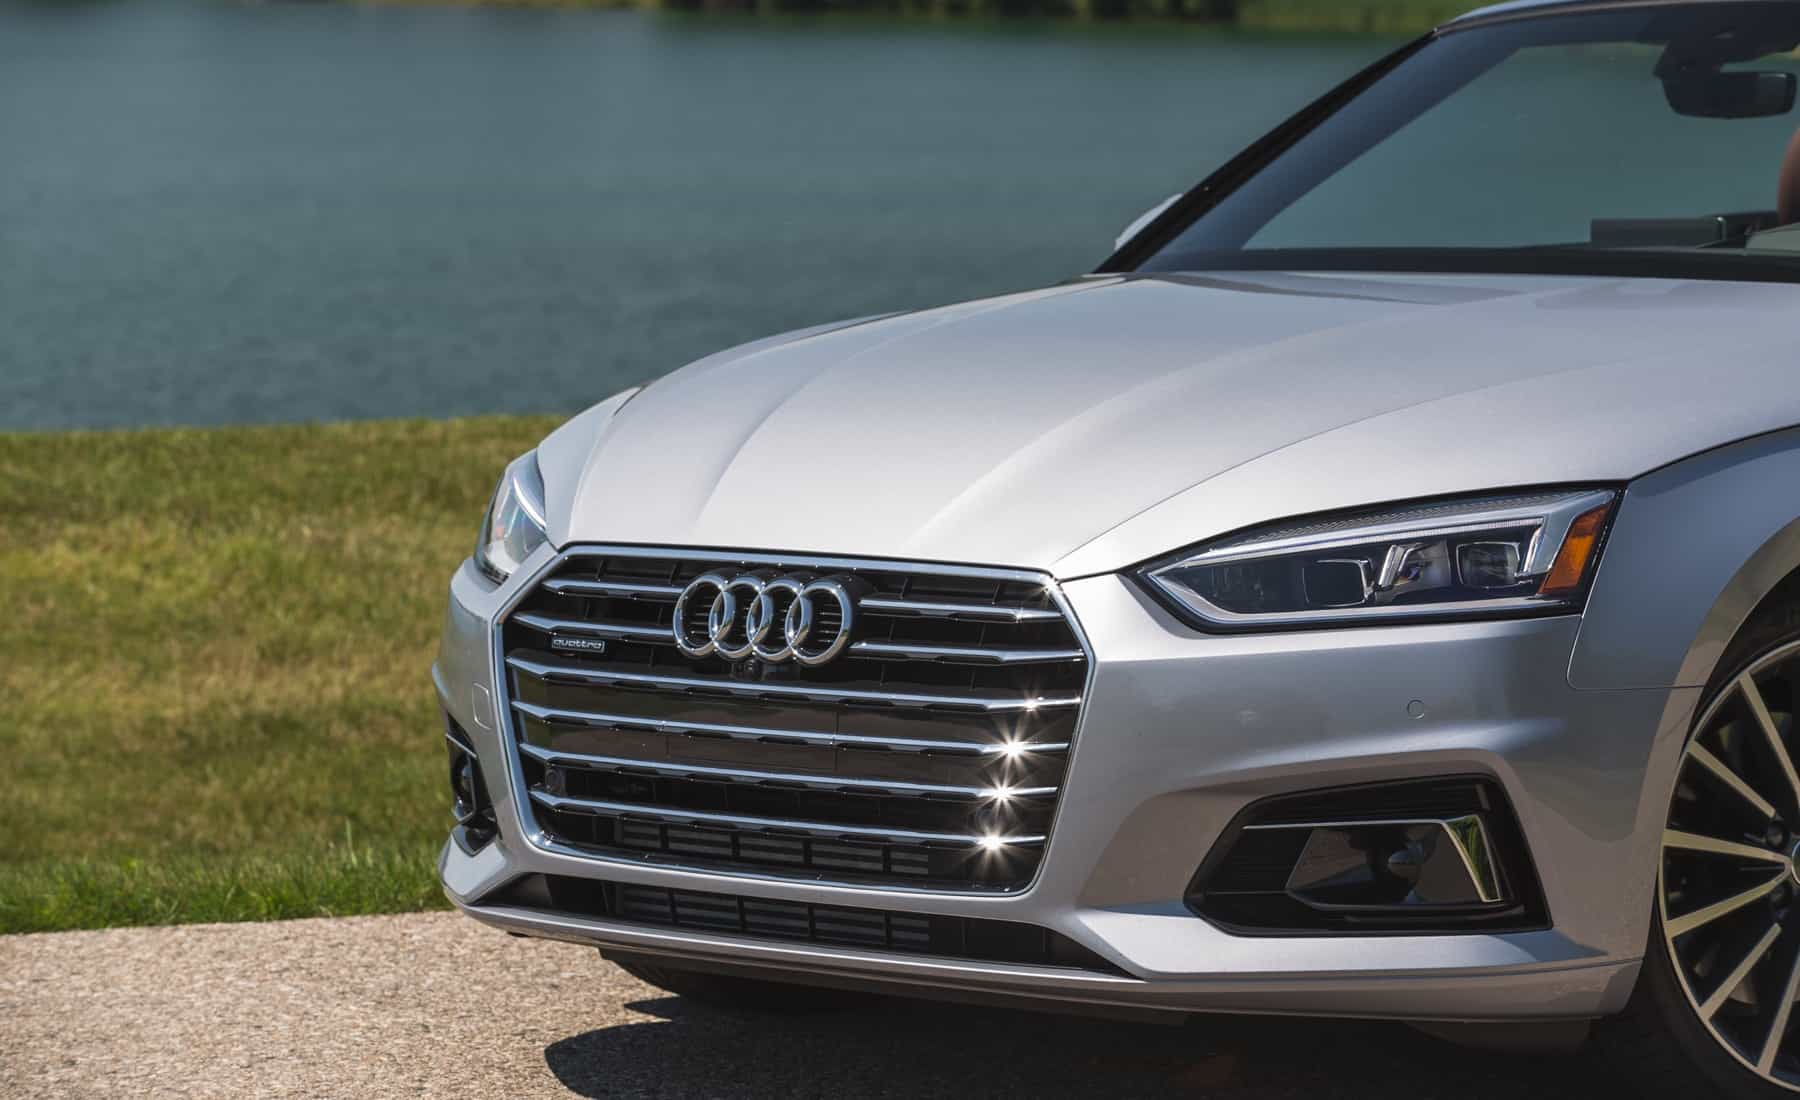 2018 Audi A5 Cabriolet Exterior View Grille (Photo 9 of 45)